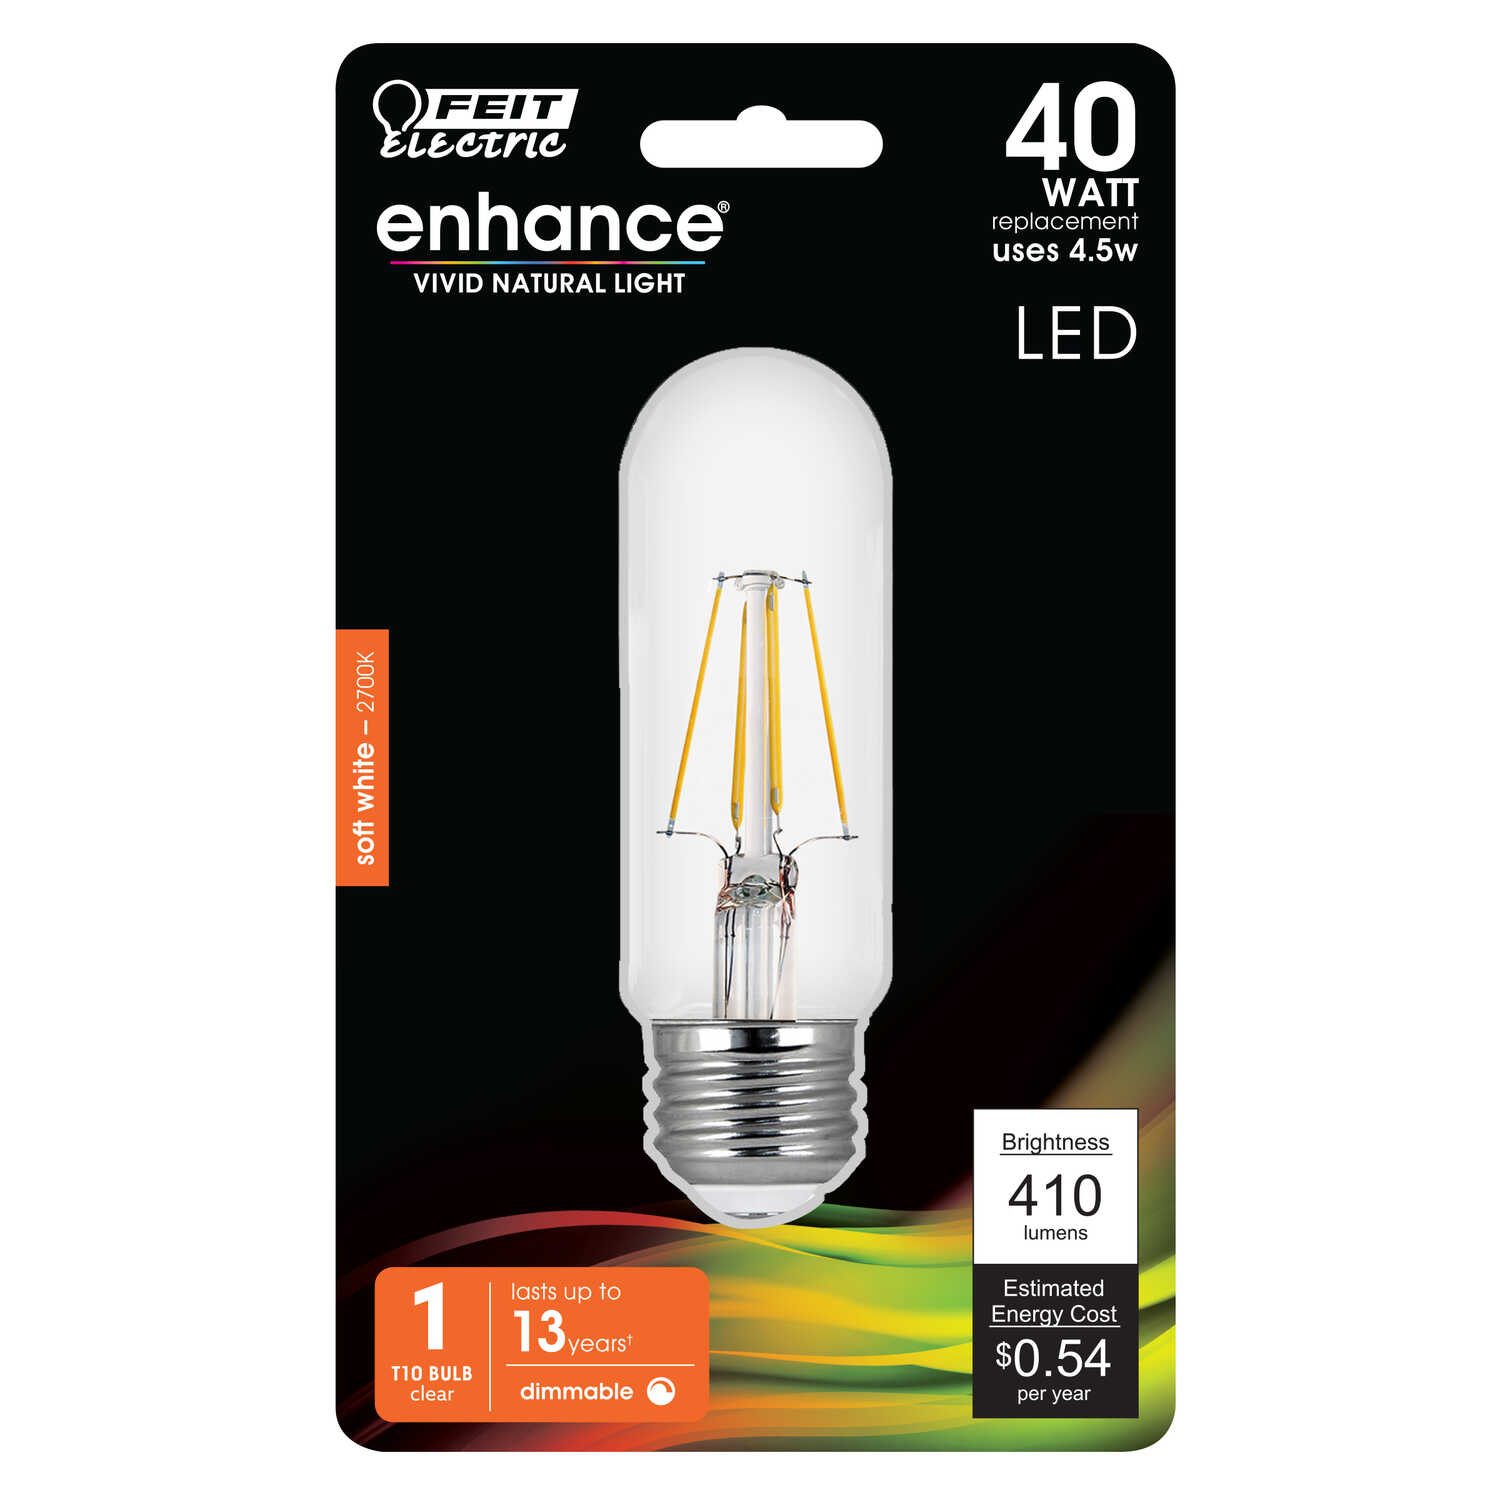 FEIT Electric  4.5 watts T10  LED Bulb  400 lumens Soft White  40 Watt Equivalence Tubular